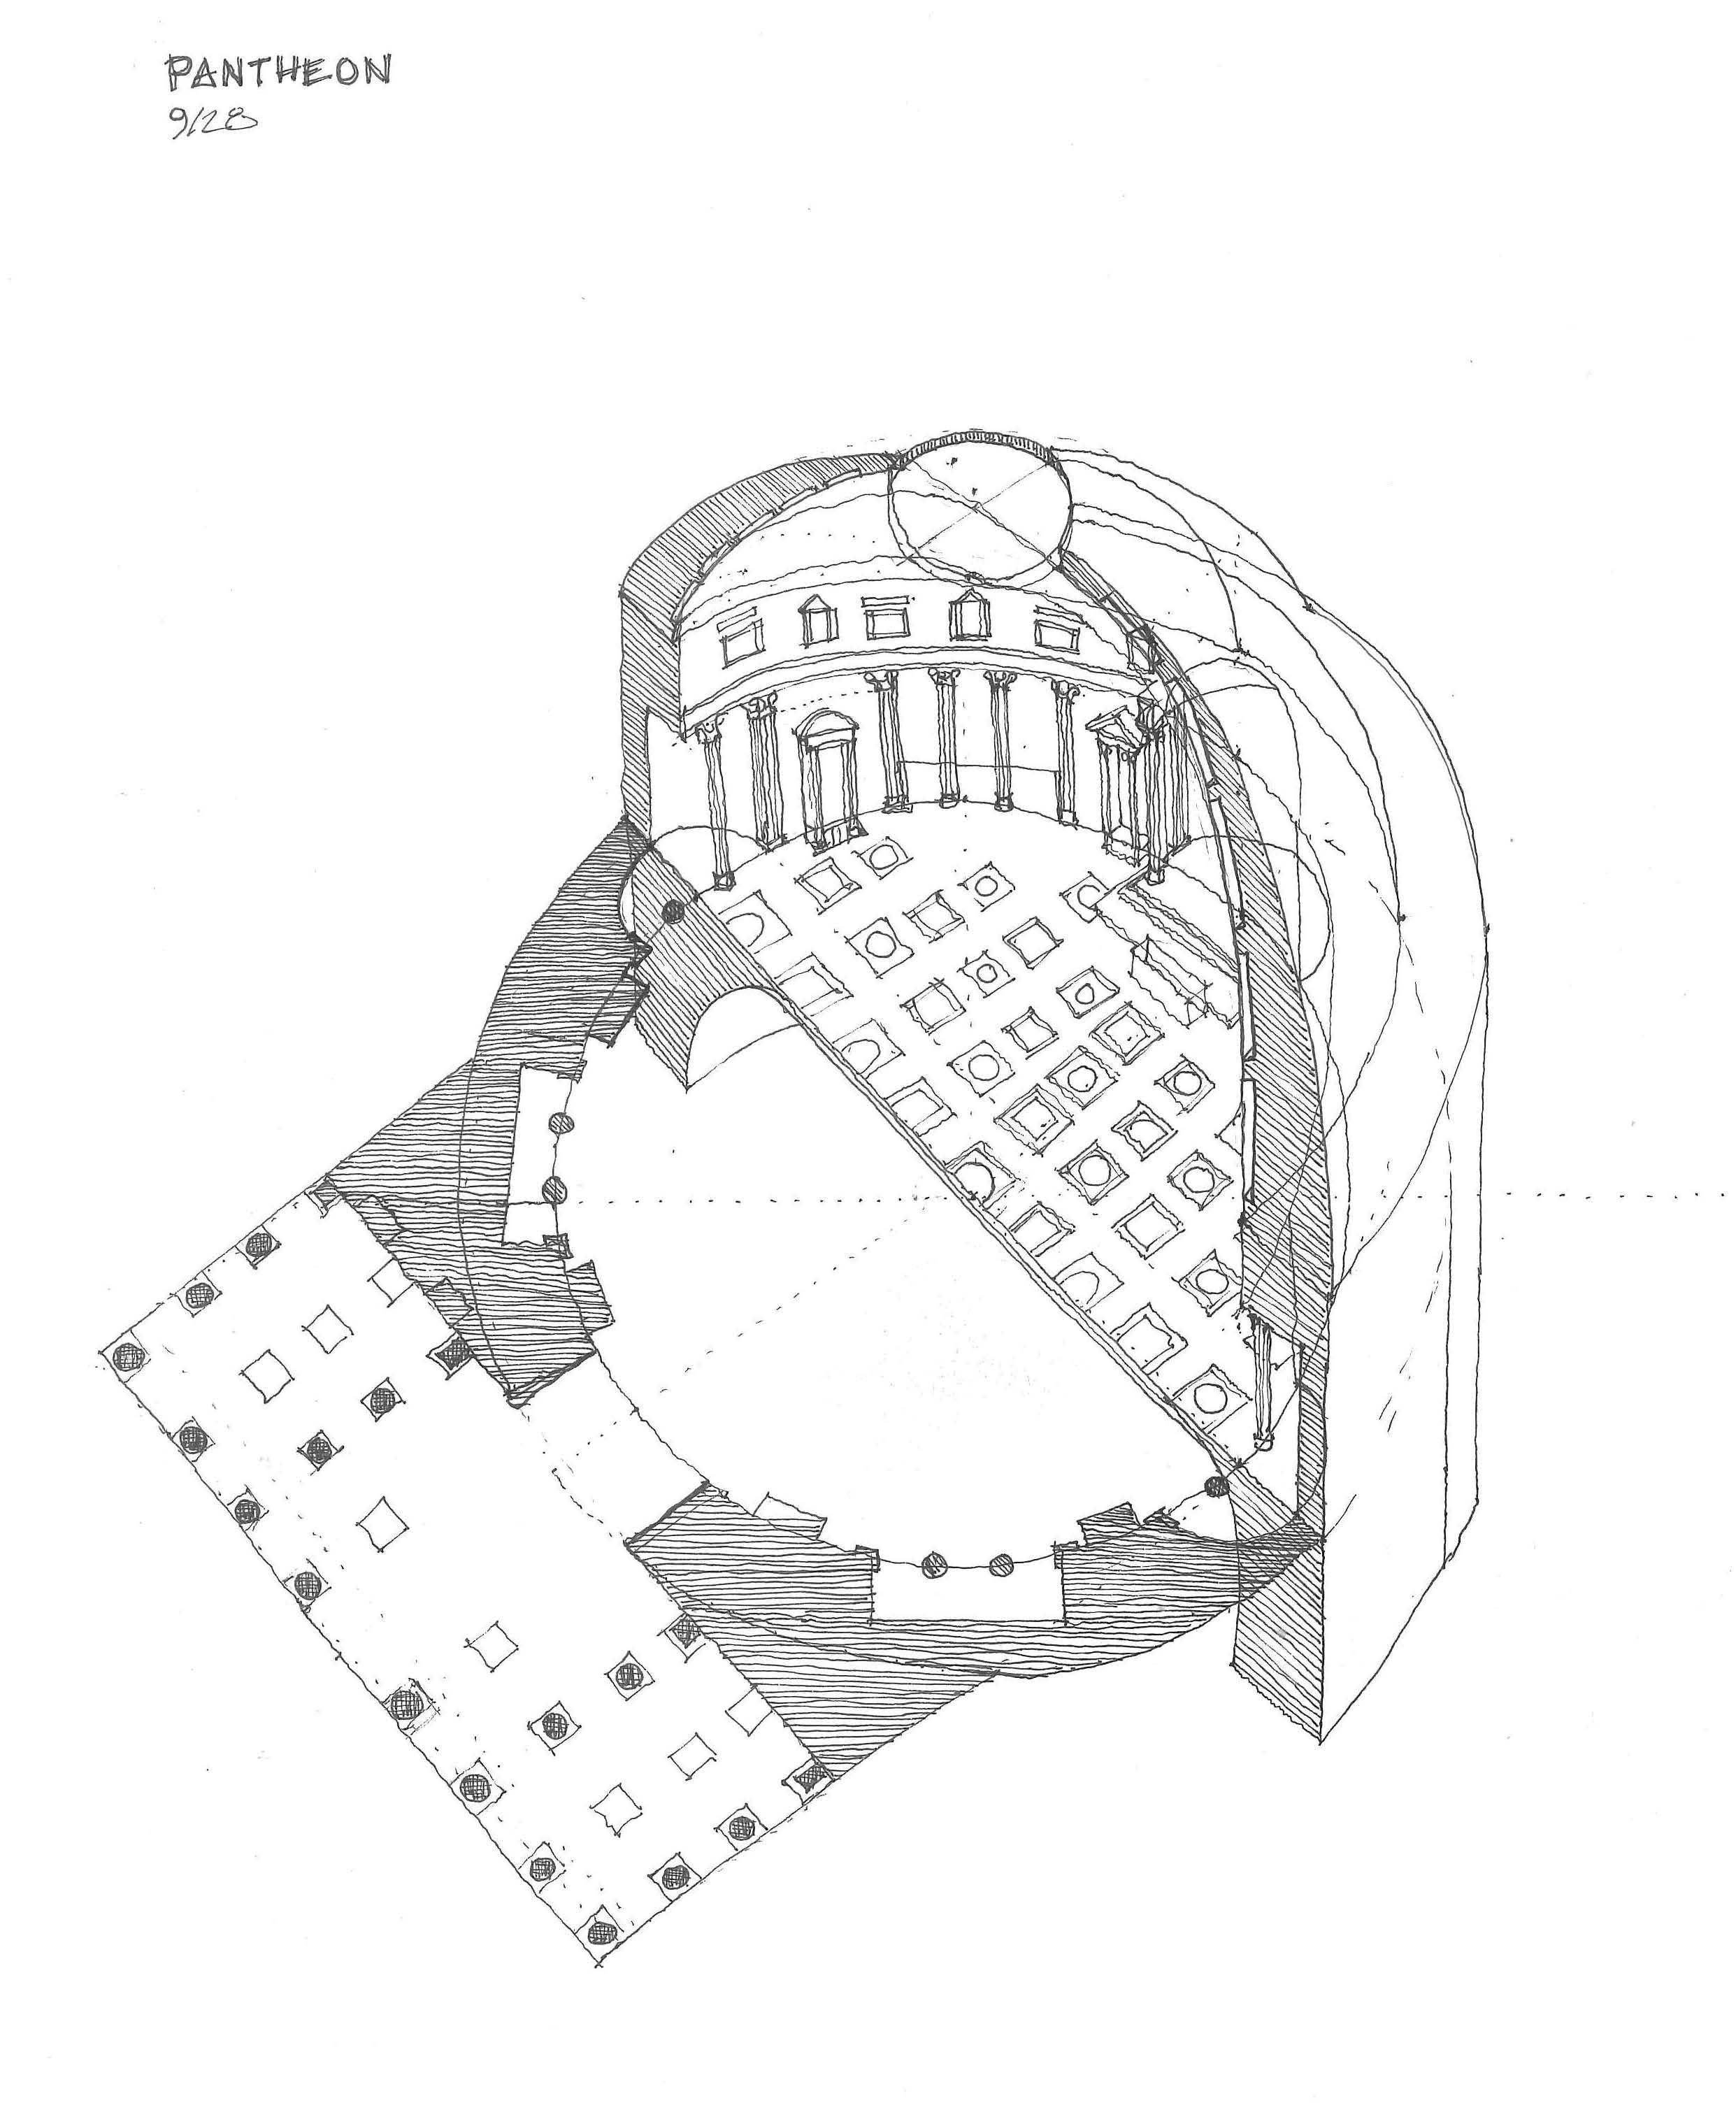 Pantheon Sketch Building Architecture